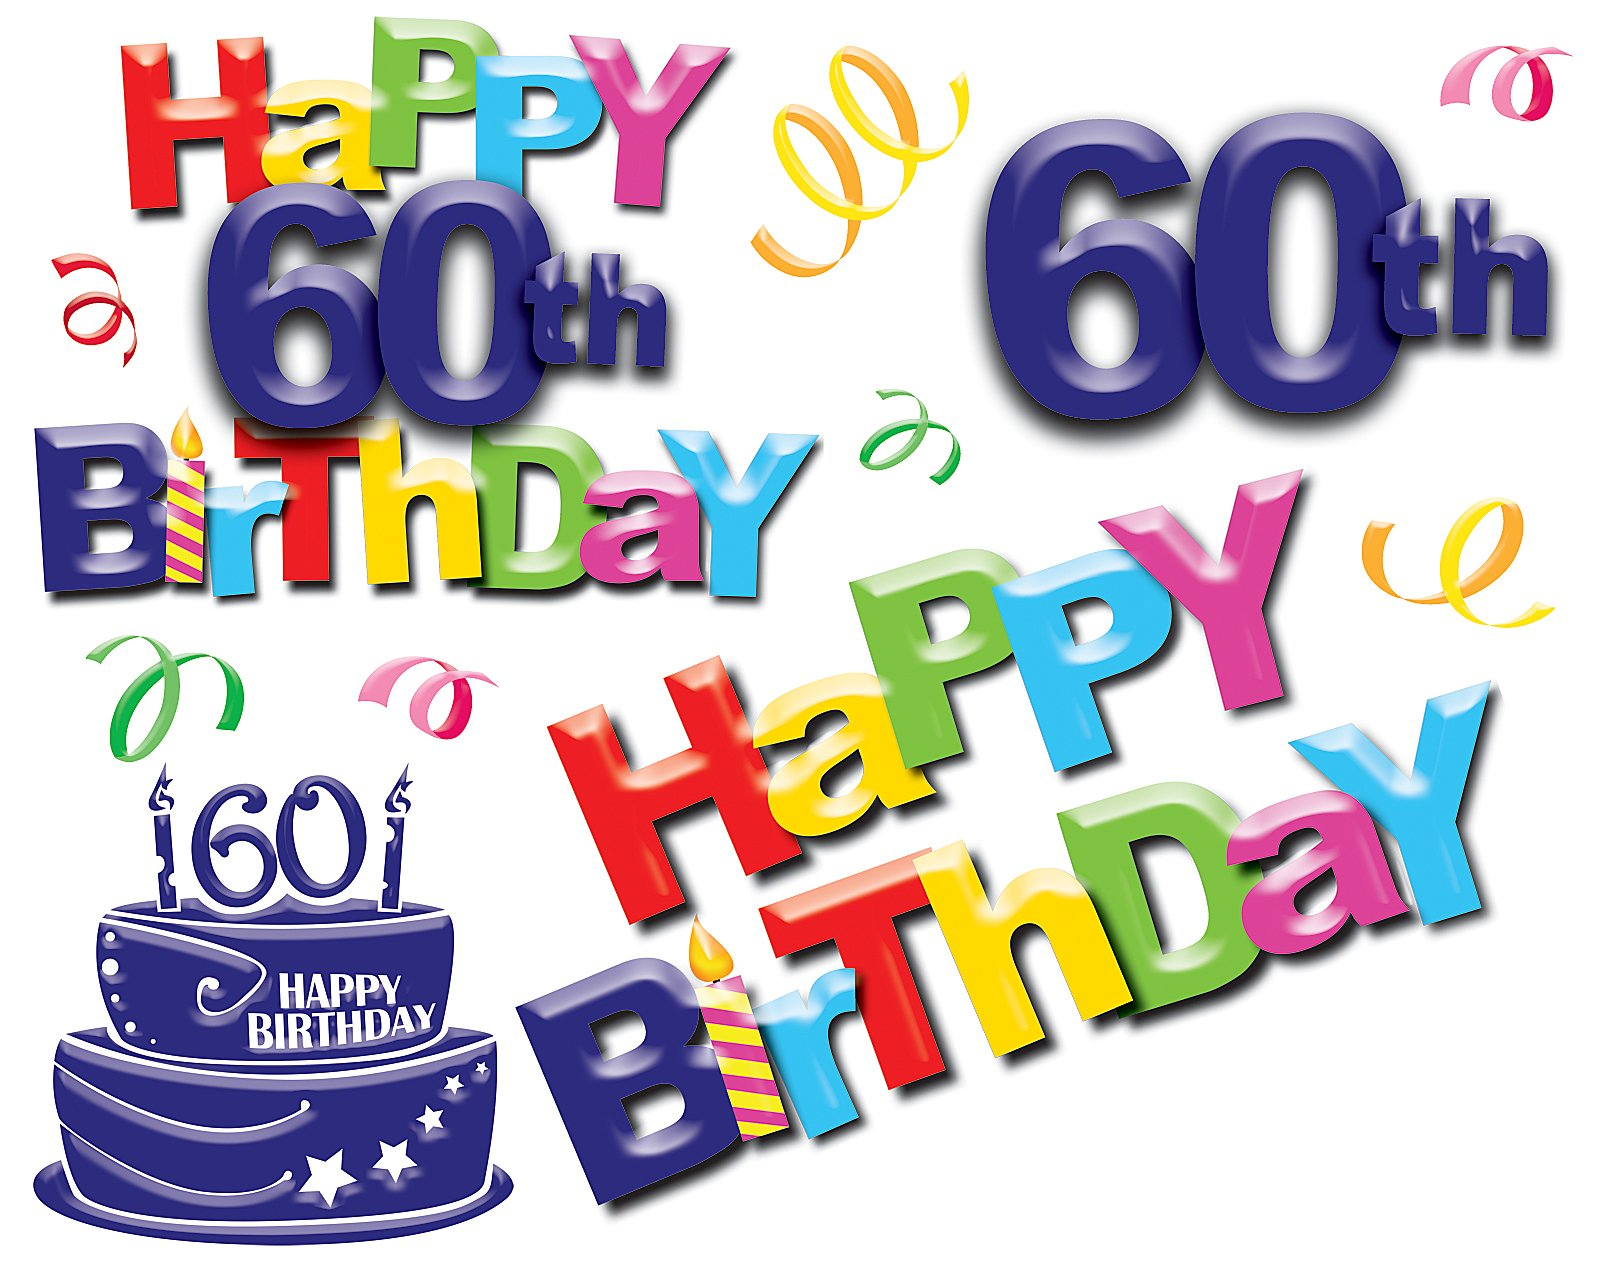 Clipart 60th birthday graphic transparent library 60 Birthday Clipart | Free download best 60 Birthday Clipart on ... graphic transparent library